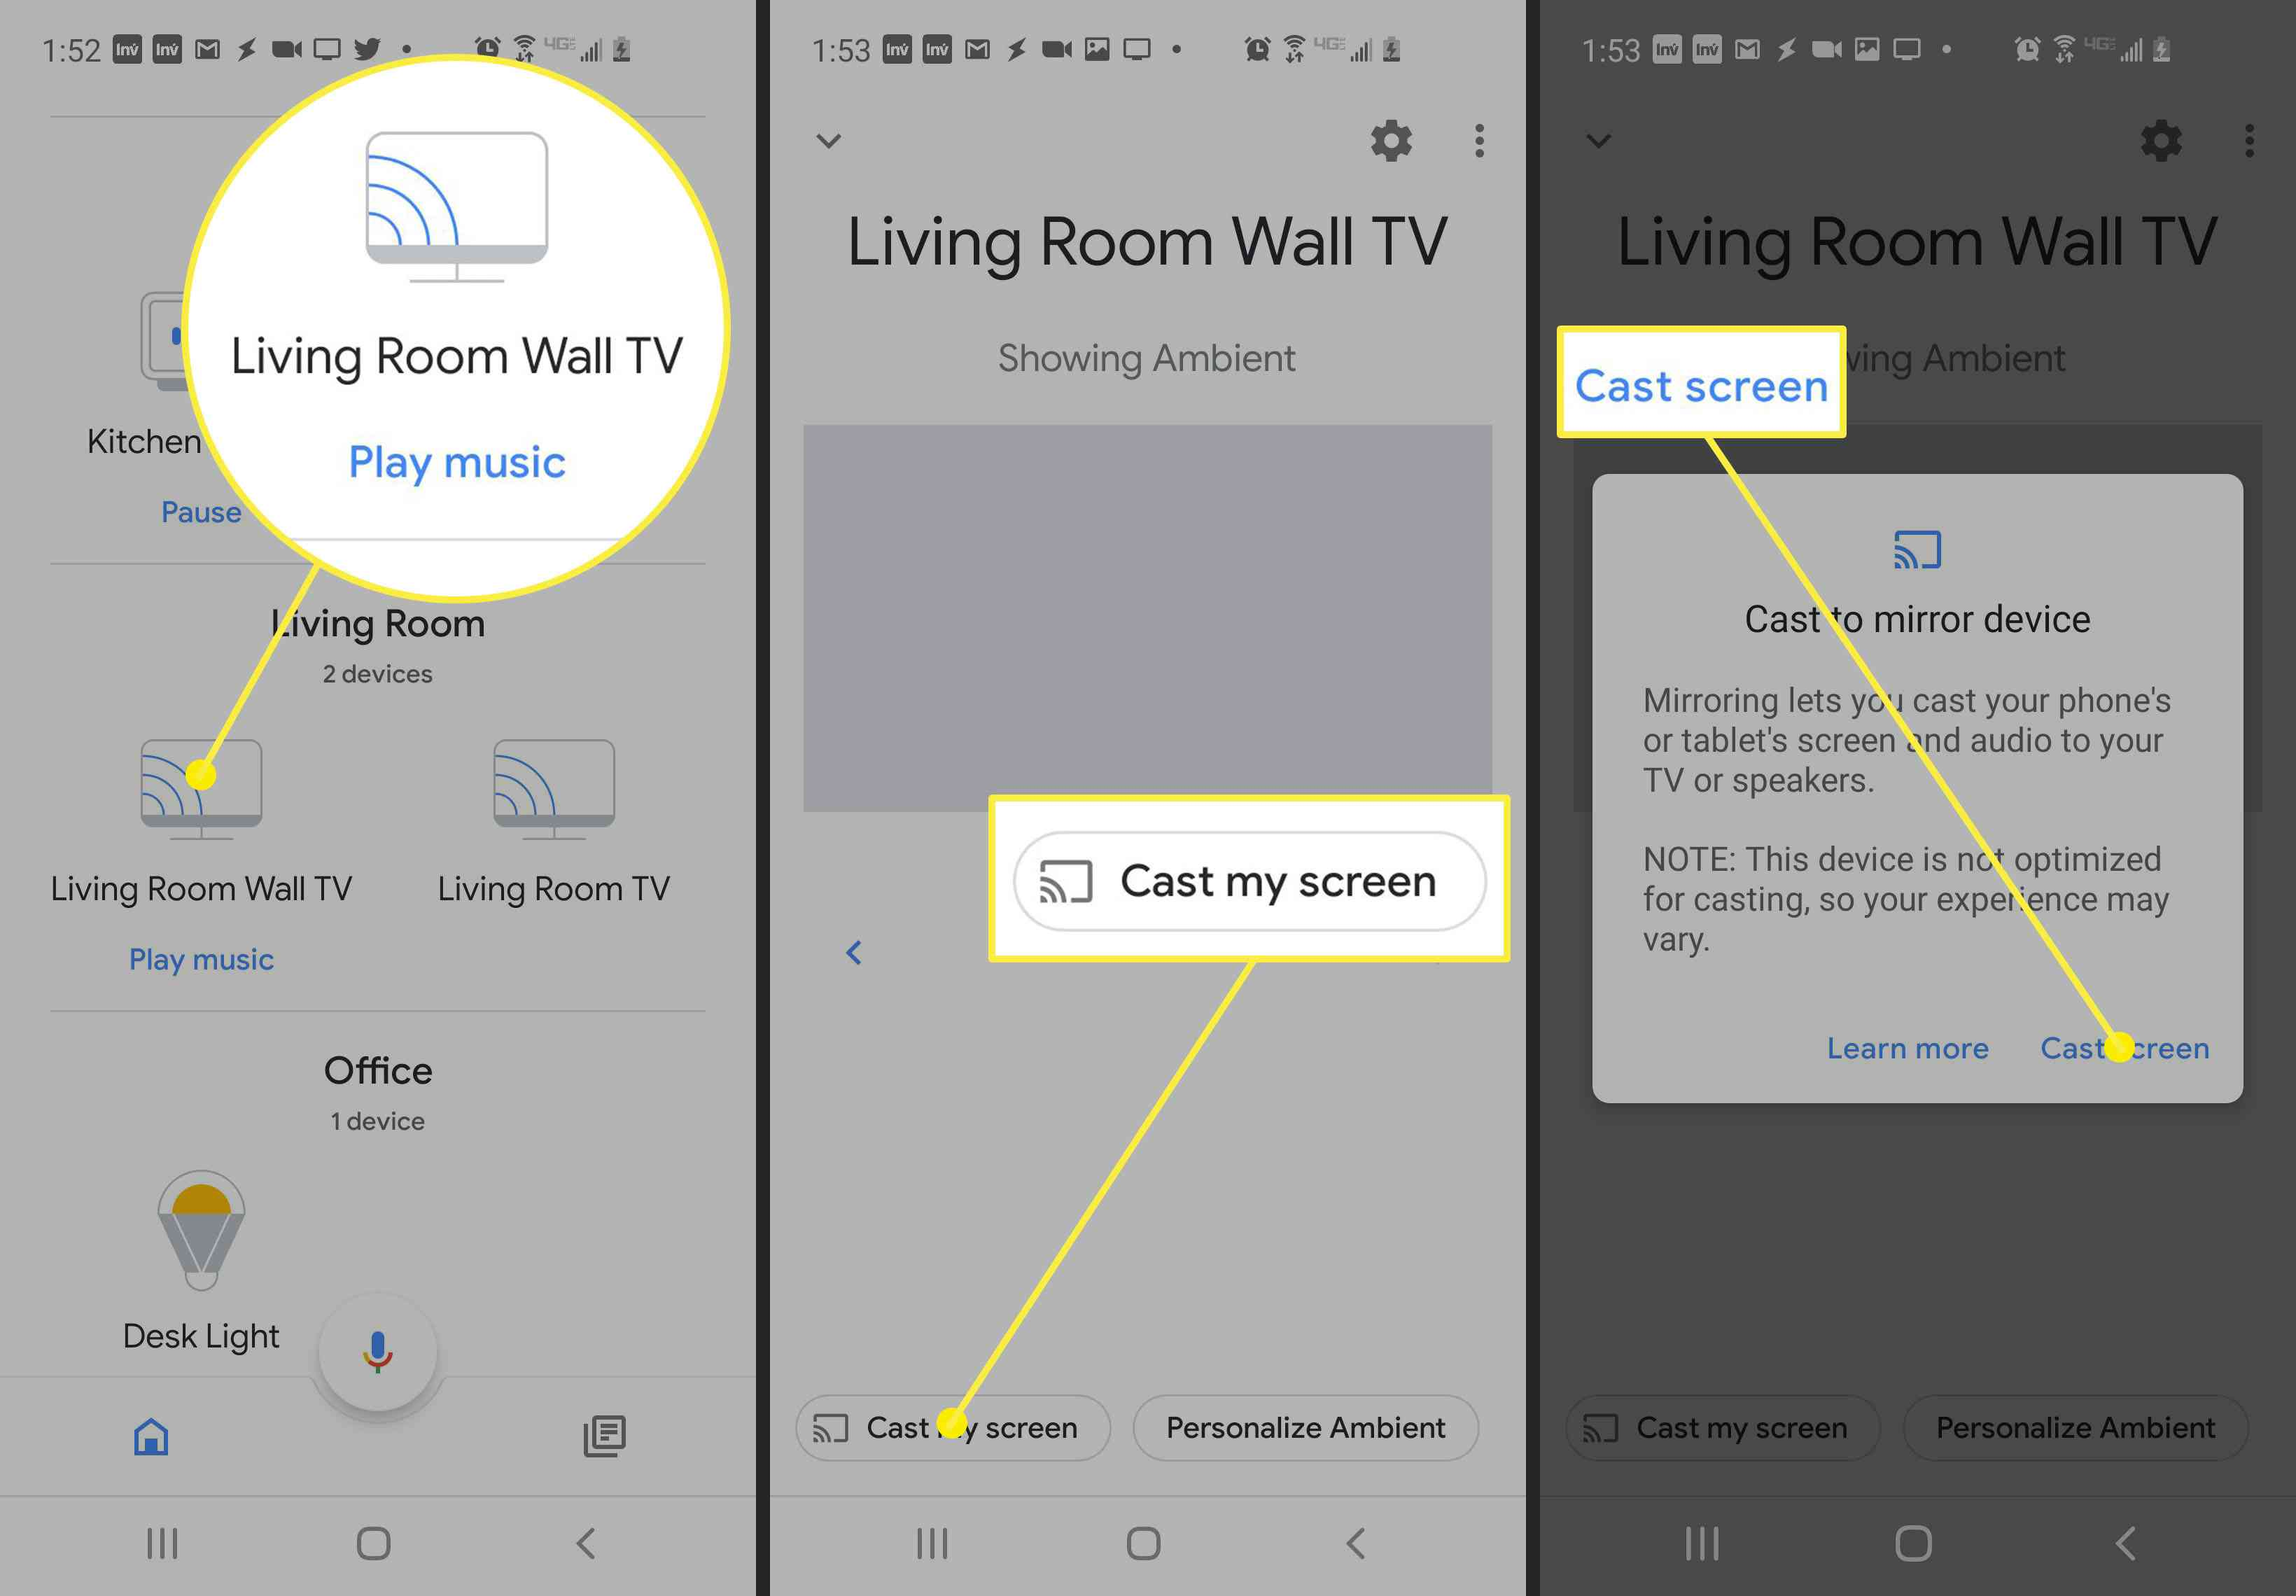 Screenshot of the steps to take to cast a screen on Google Home app.